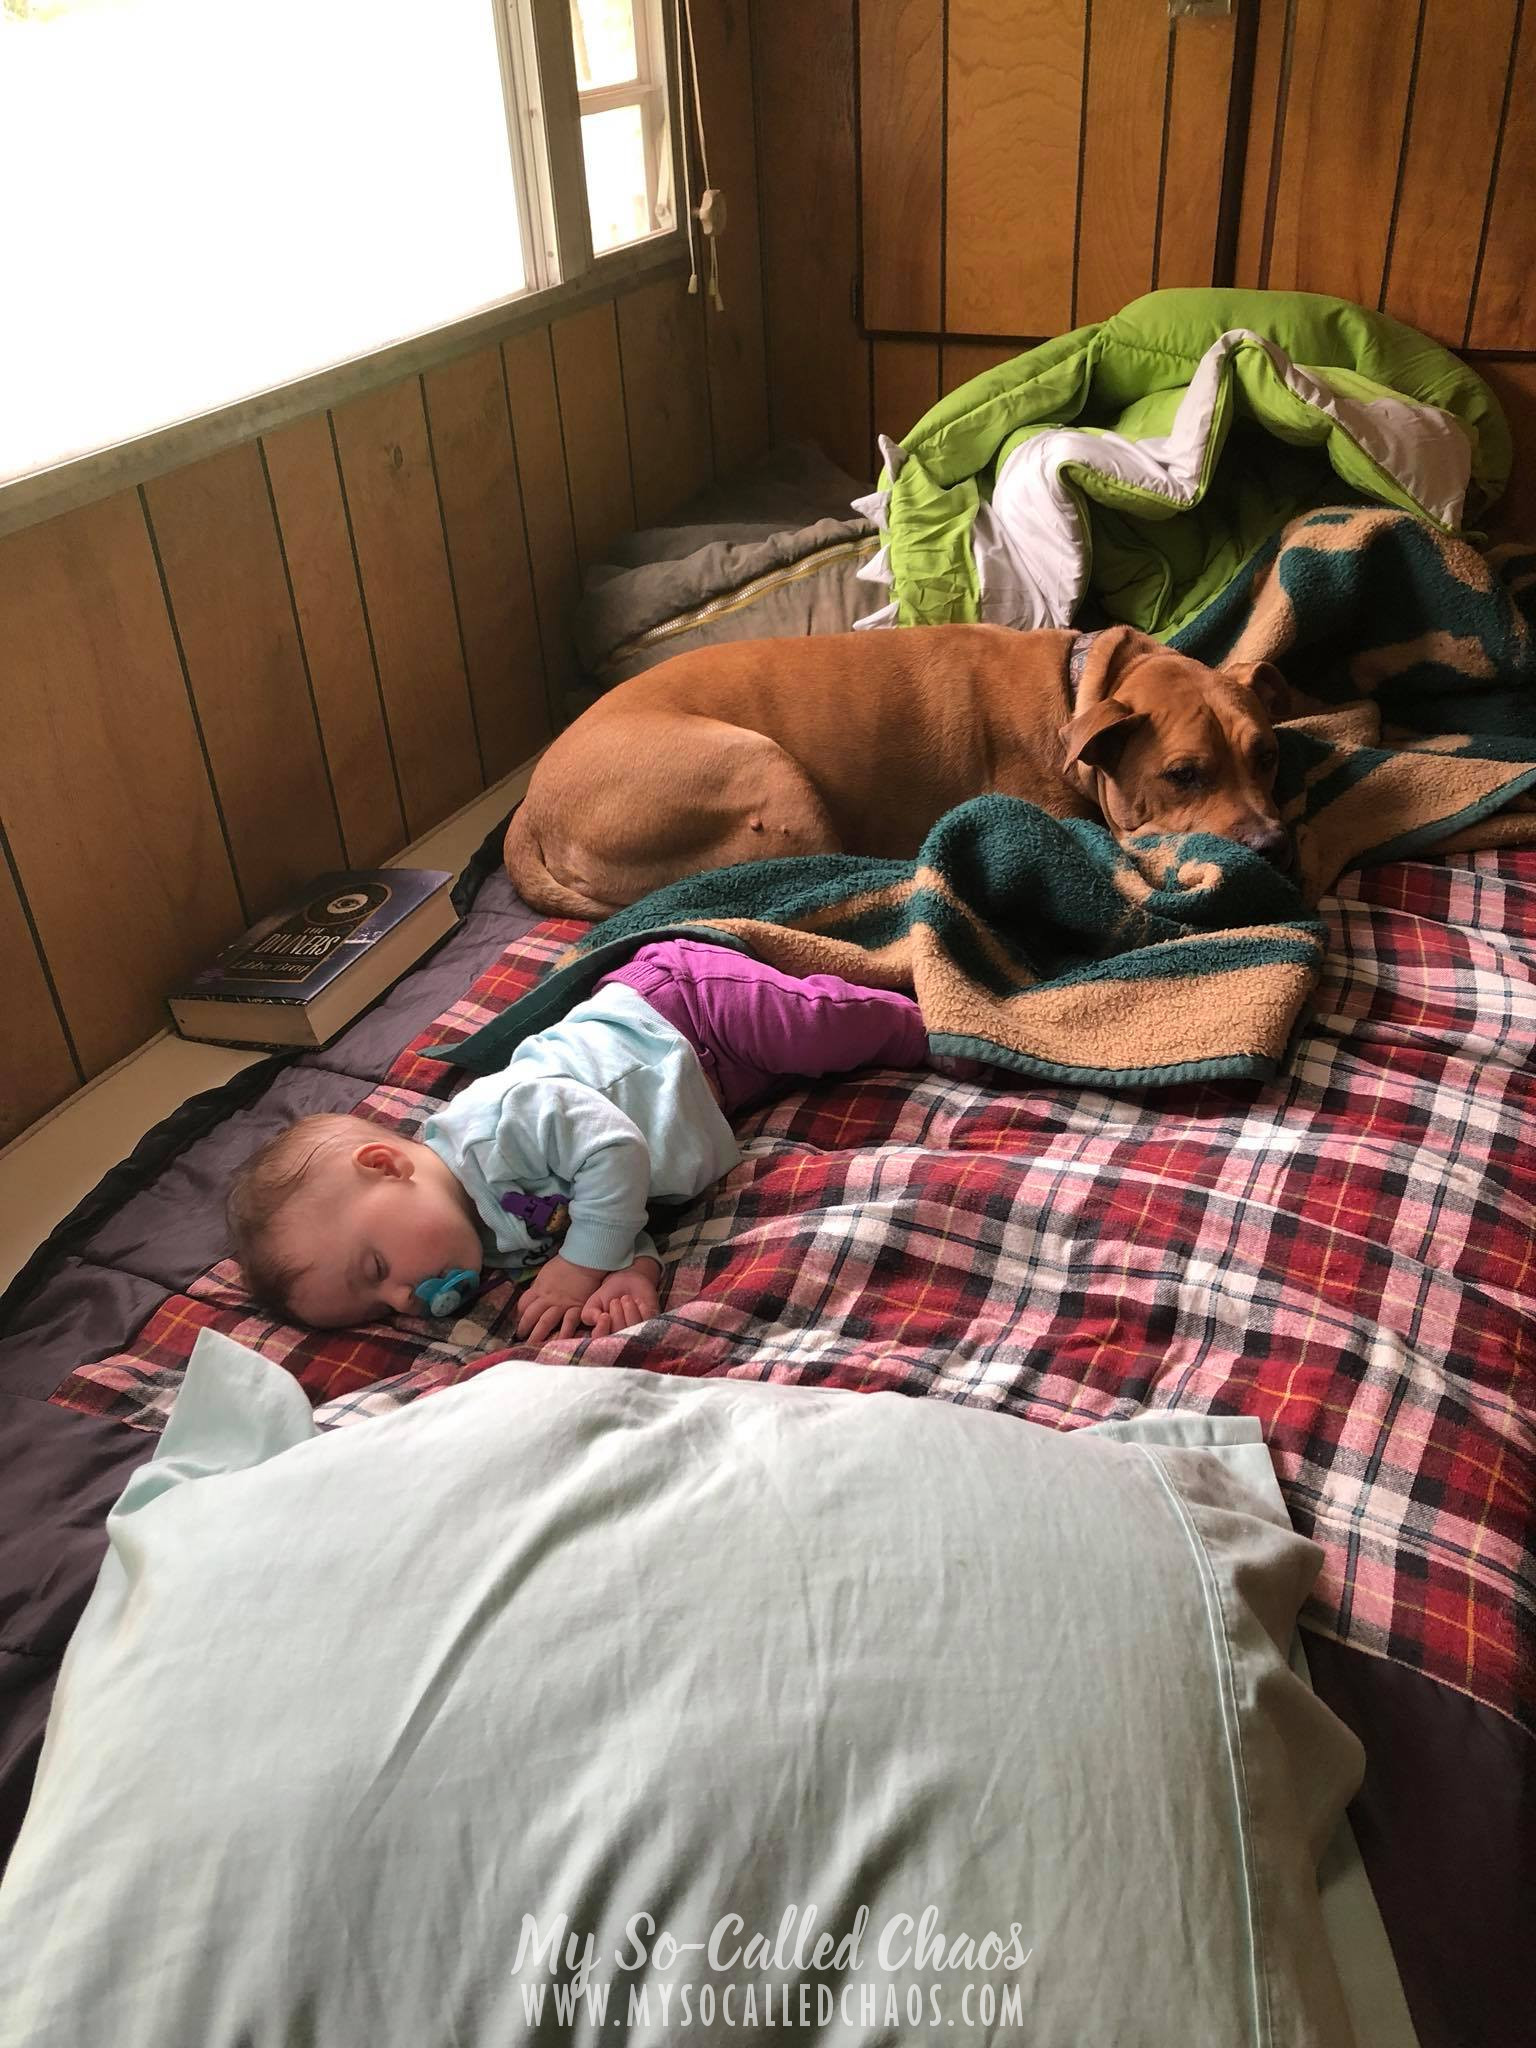 6 month old baby girl napping in a camping trailer with her trusty pitbull by her side.